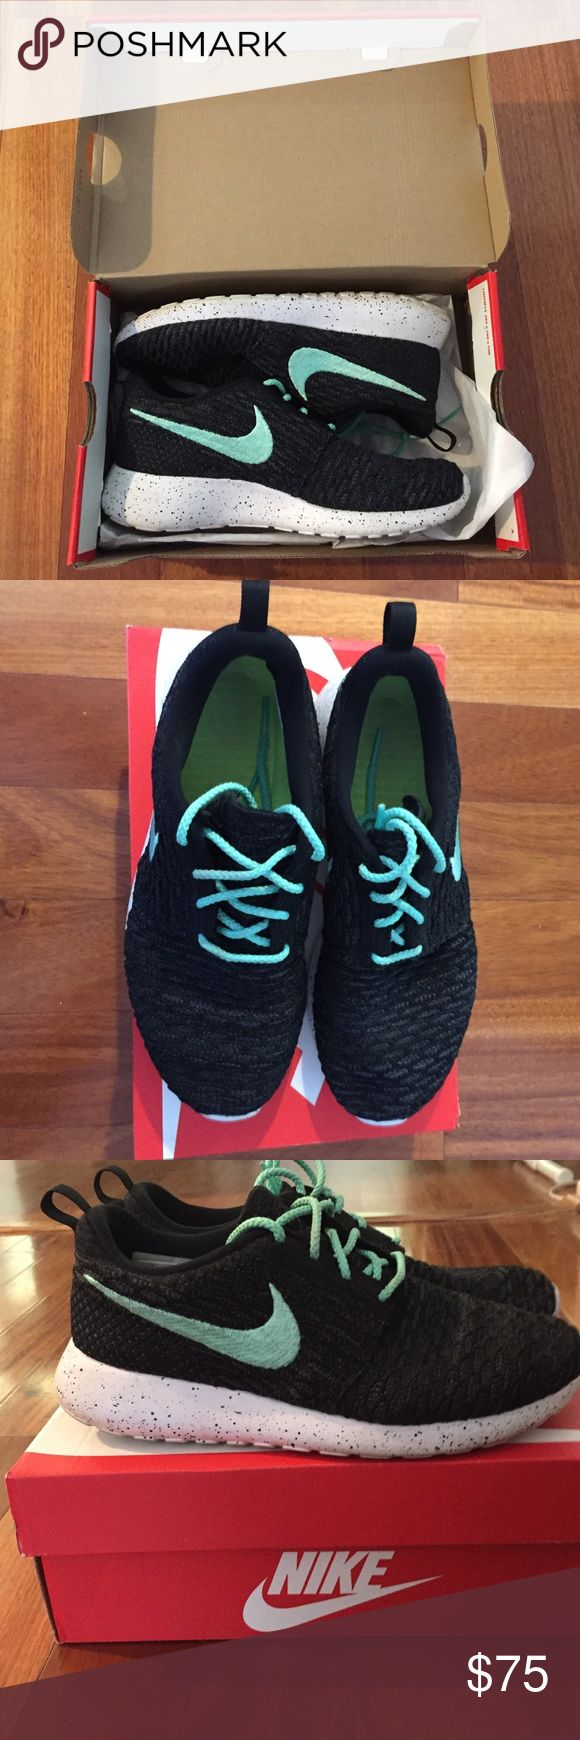 Nike ID Roshe one Custom Nike ID's black with mint green laces and swoosh. Speckled black and white sole. Worn but in excellent condition. Comes in box. No trades! I don't negotiate in comments so please use the offer button for offers! Nike Shoes Athletic Shoes